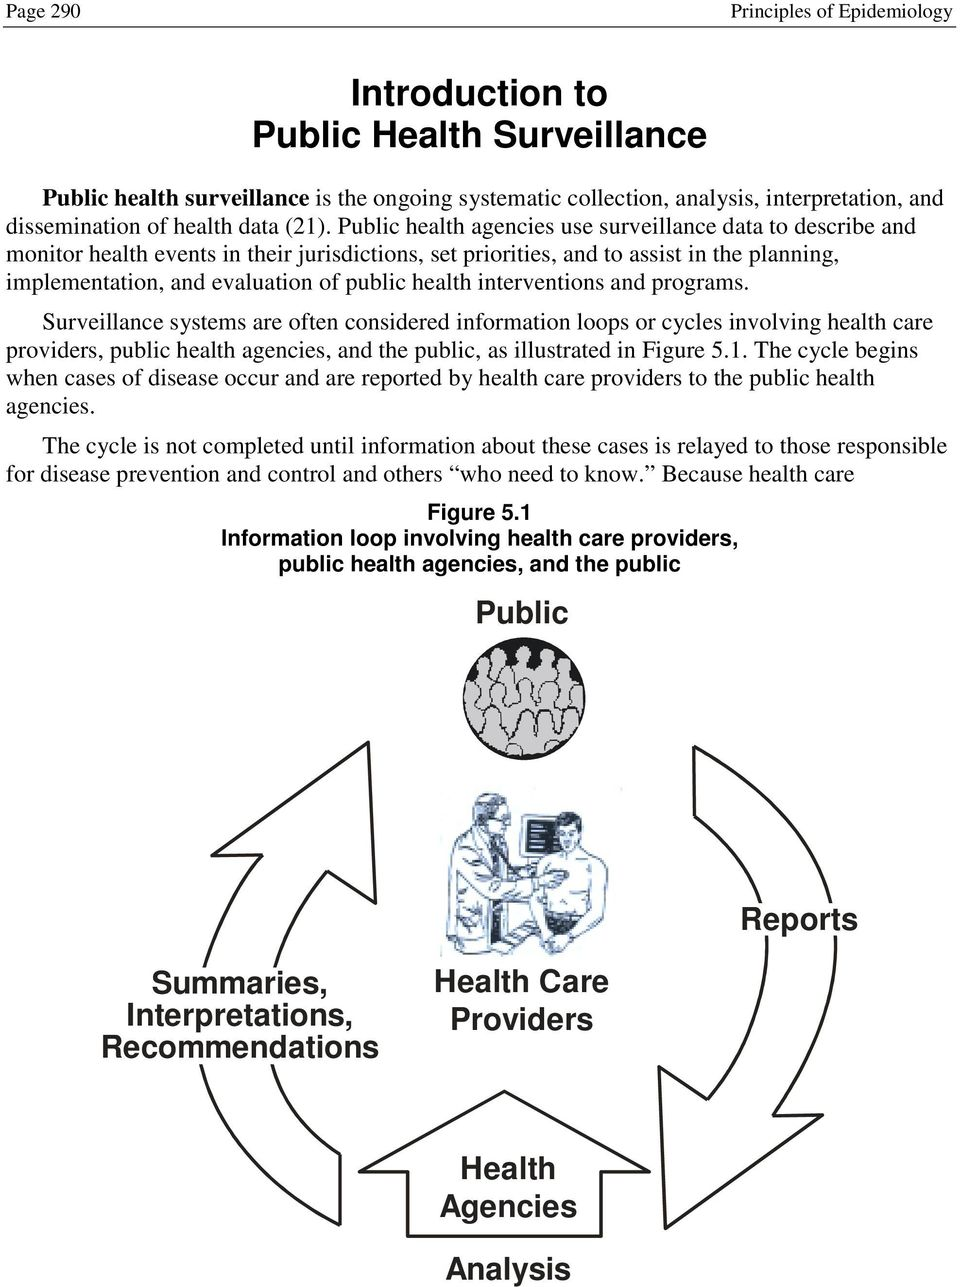 Public health agencies use surveillance data to describe and monitor health events in their jurisdictions, set priorities, and to assist in the planning, implementation, and evaluation of public